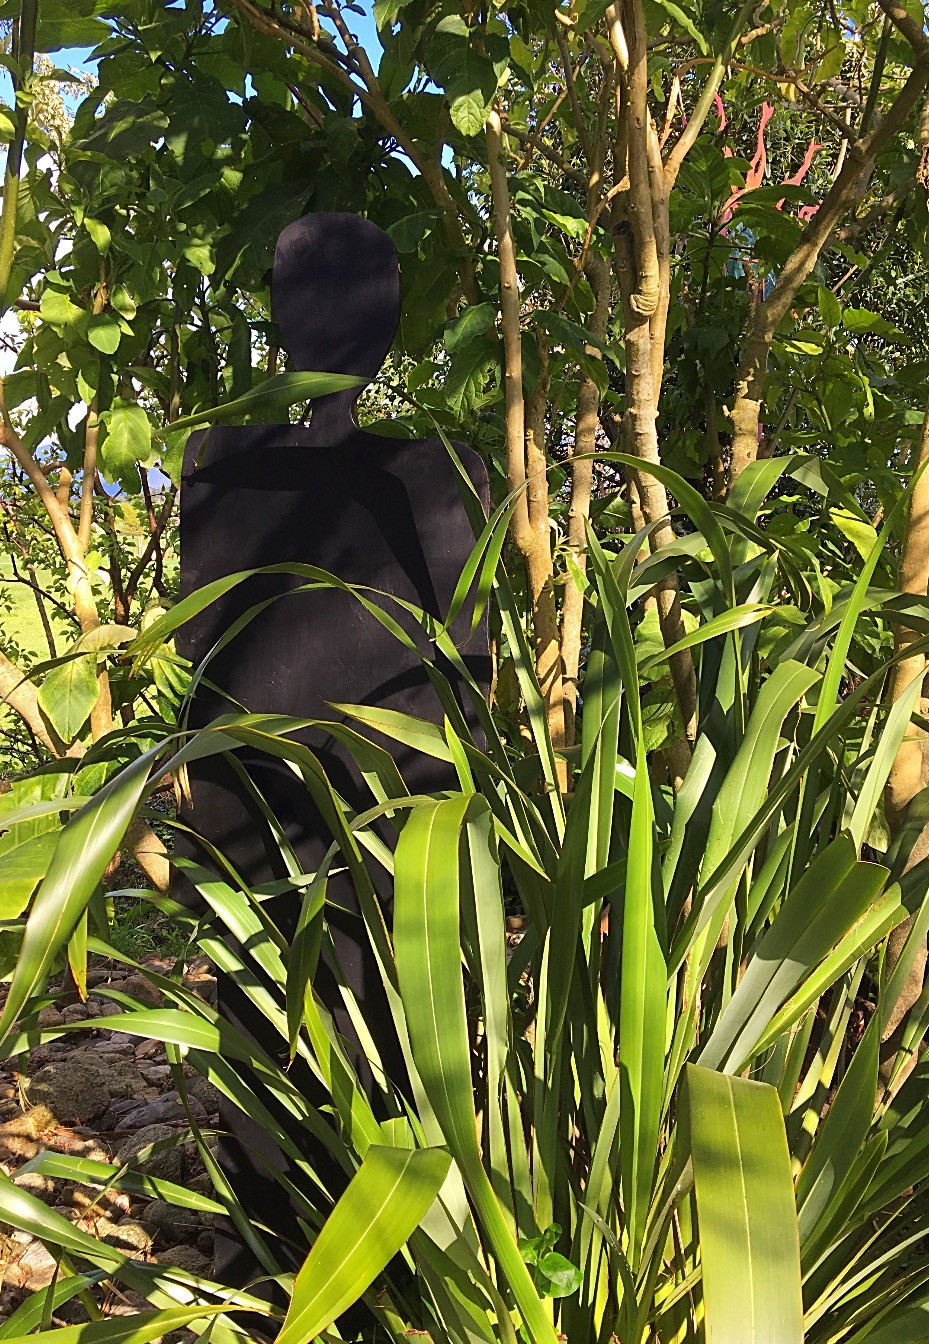 shadow figure amongst foliage